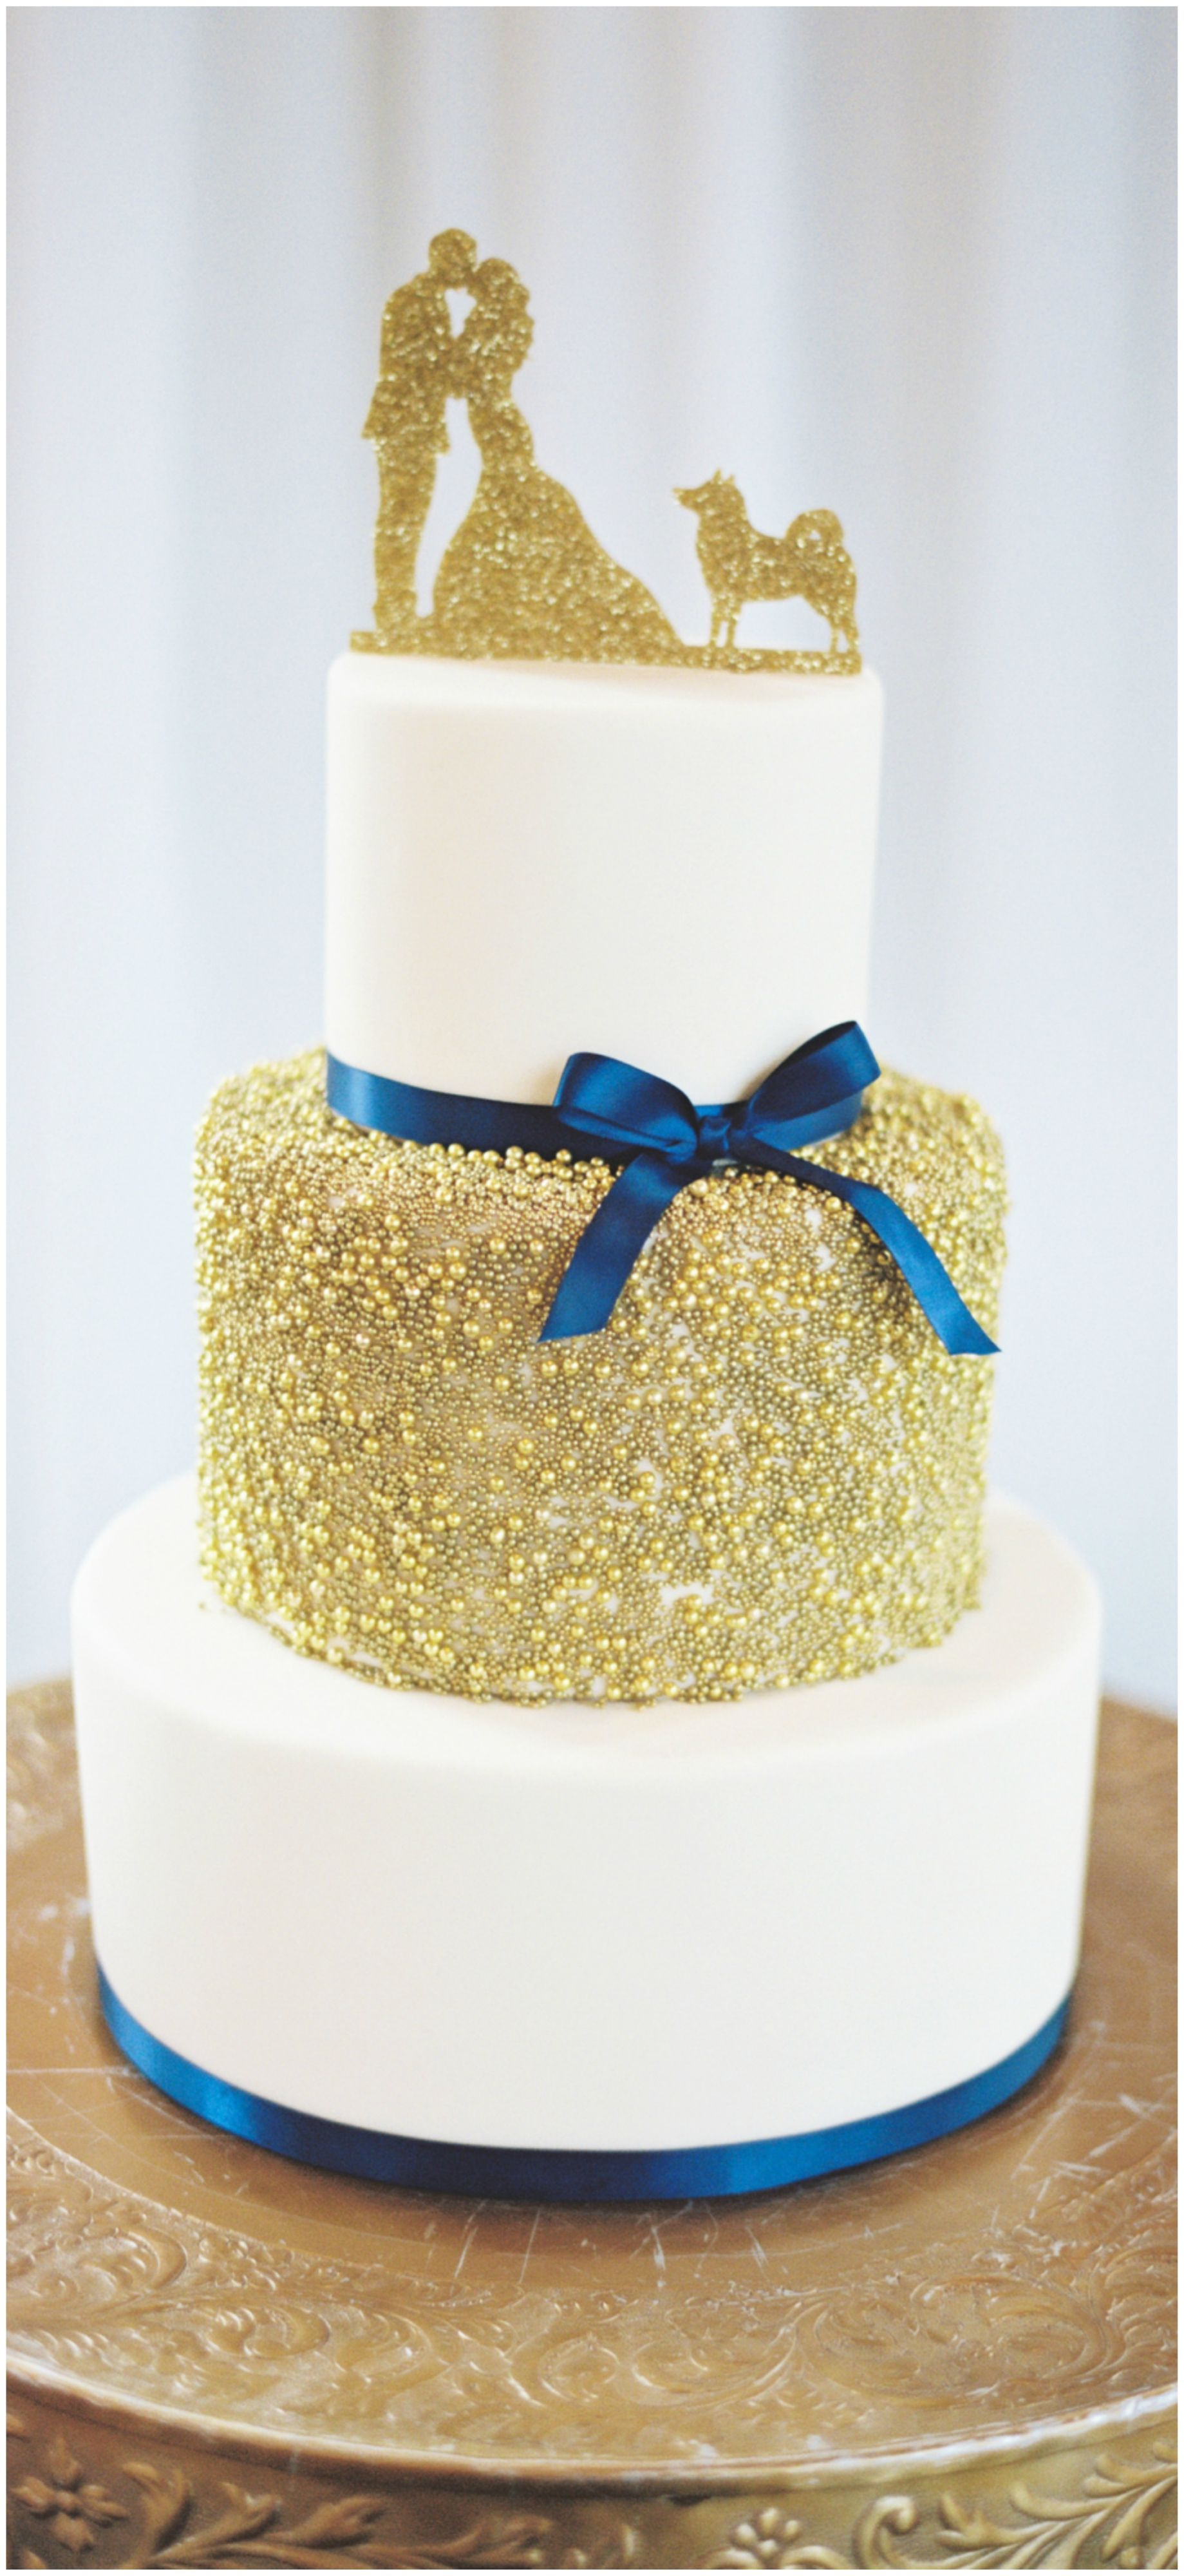 The Smarter Way to Wed | Wedding cake gold, Gold cake topper and ...